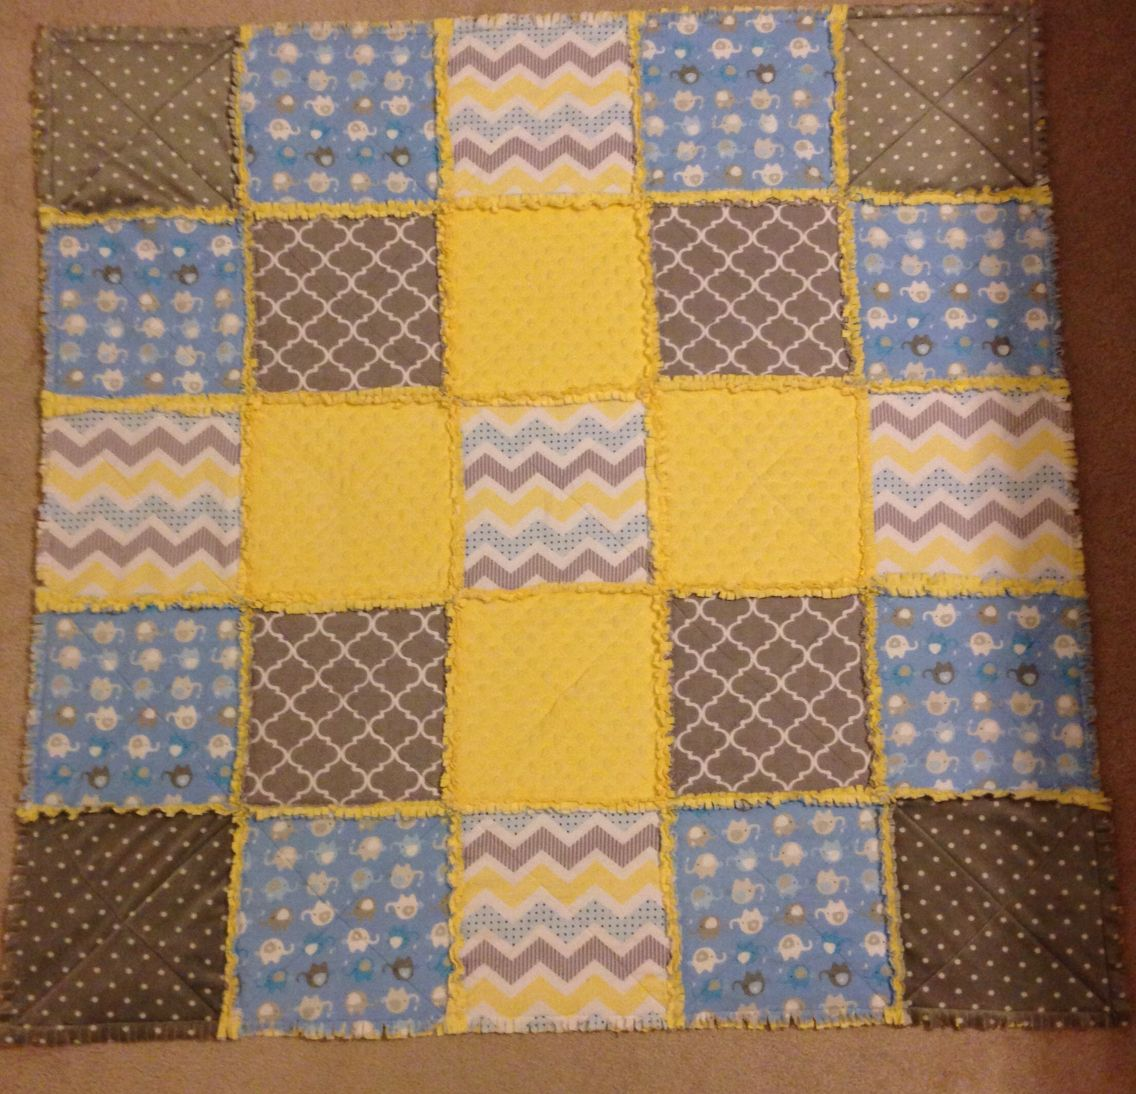 Yellow, gray, and blue minky baby rag quilt, March 2015 ~Chelmo